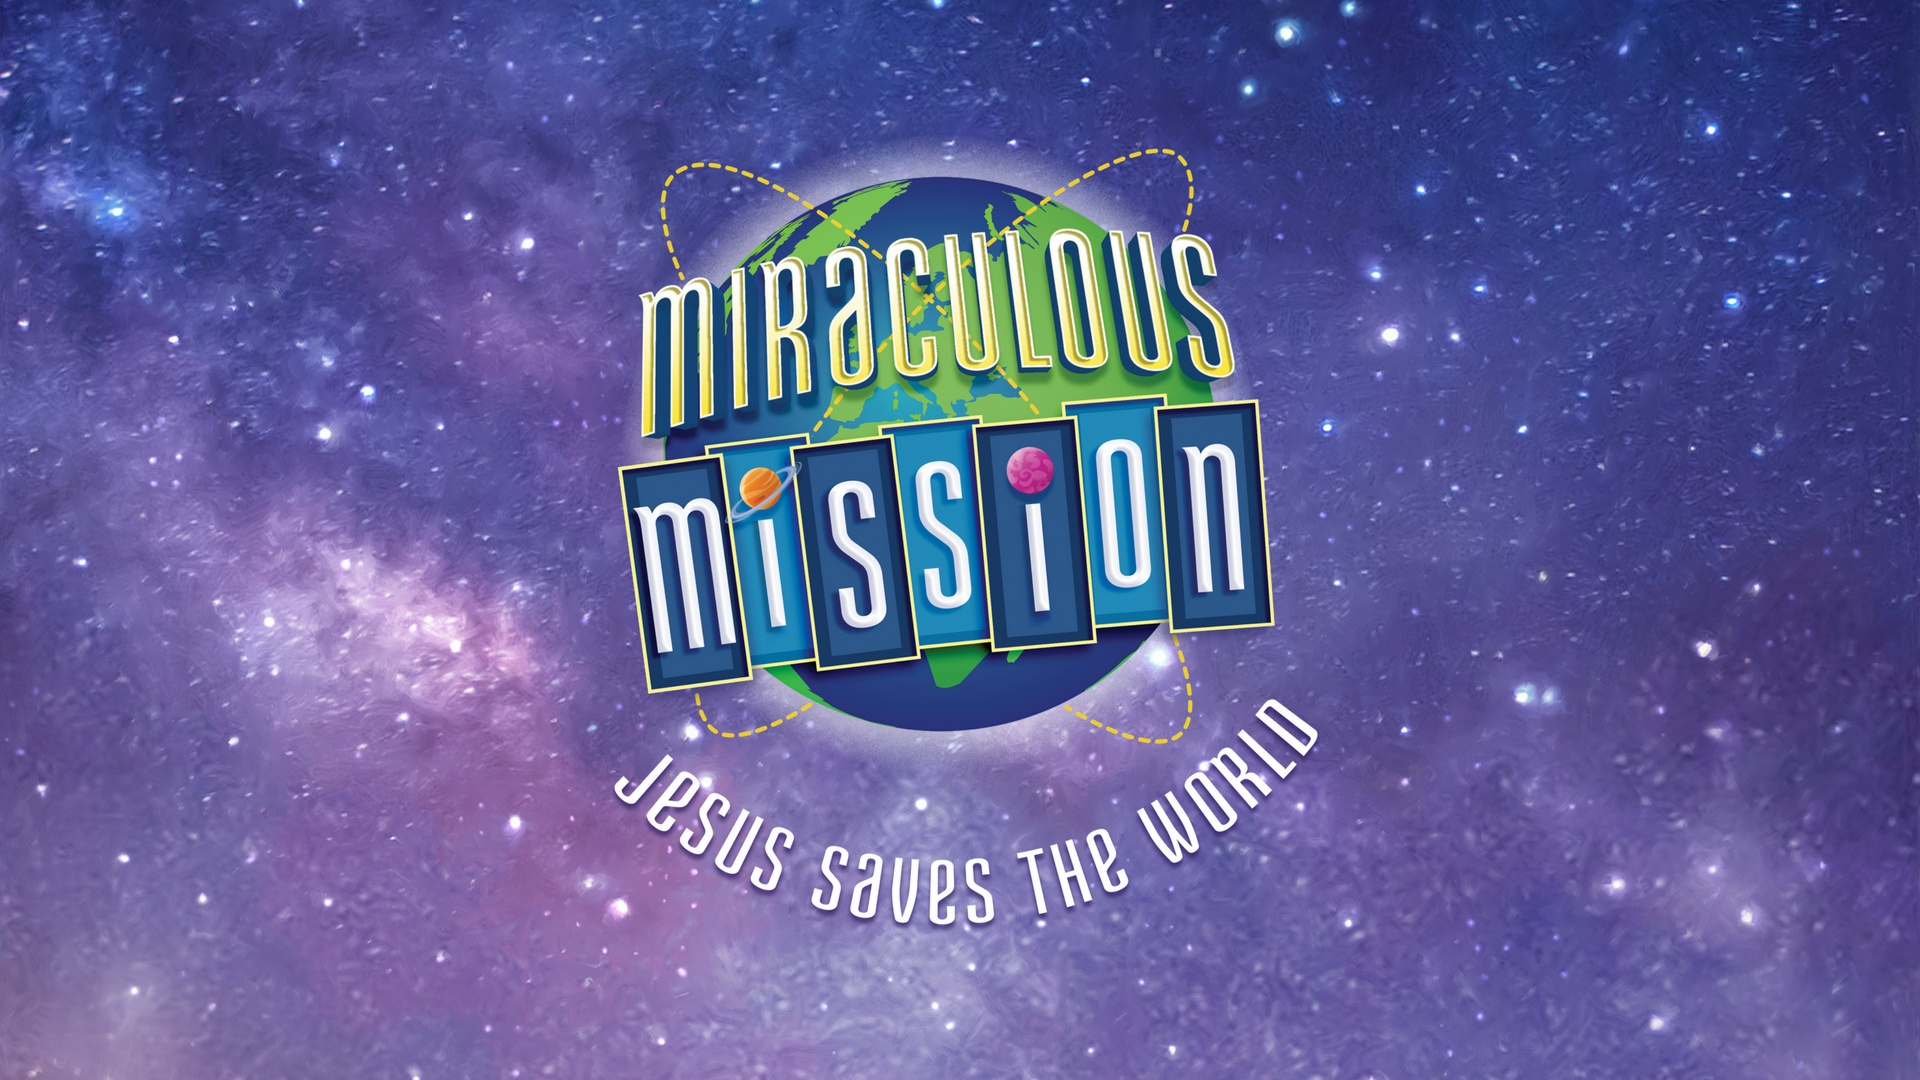 Miraculous Mission  VBS - Facebook Event Photo